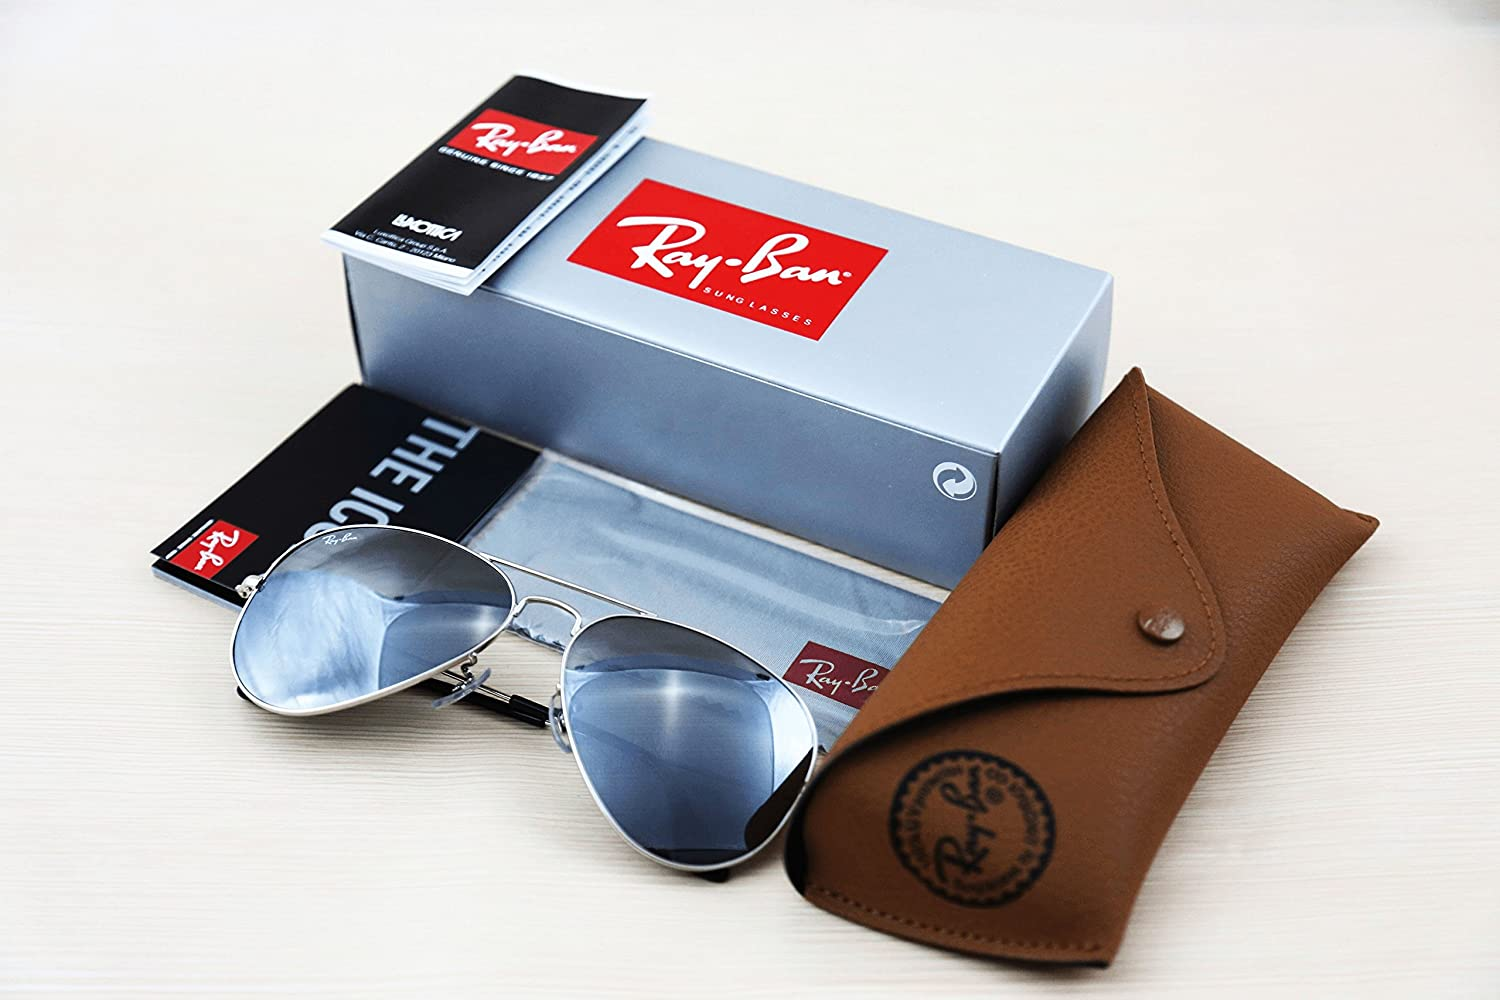 ray ban unisex rb3025 58mm sunglasses  Ray-Ban RB3025 W3234 55 mm: Ray-Ban: Amazon.co.uk: Clothing